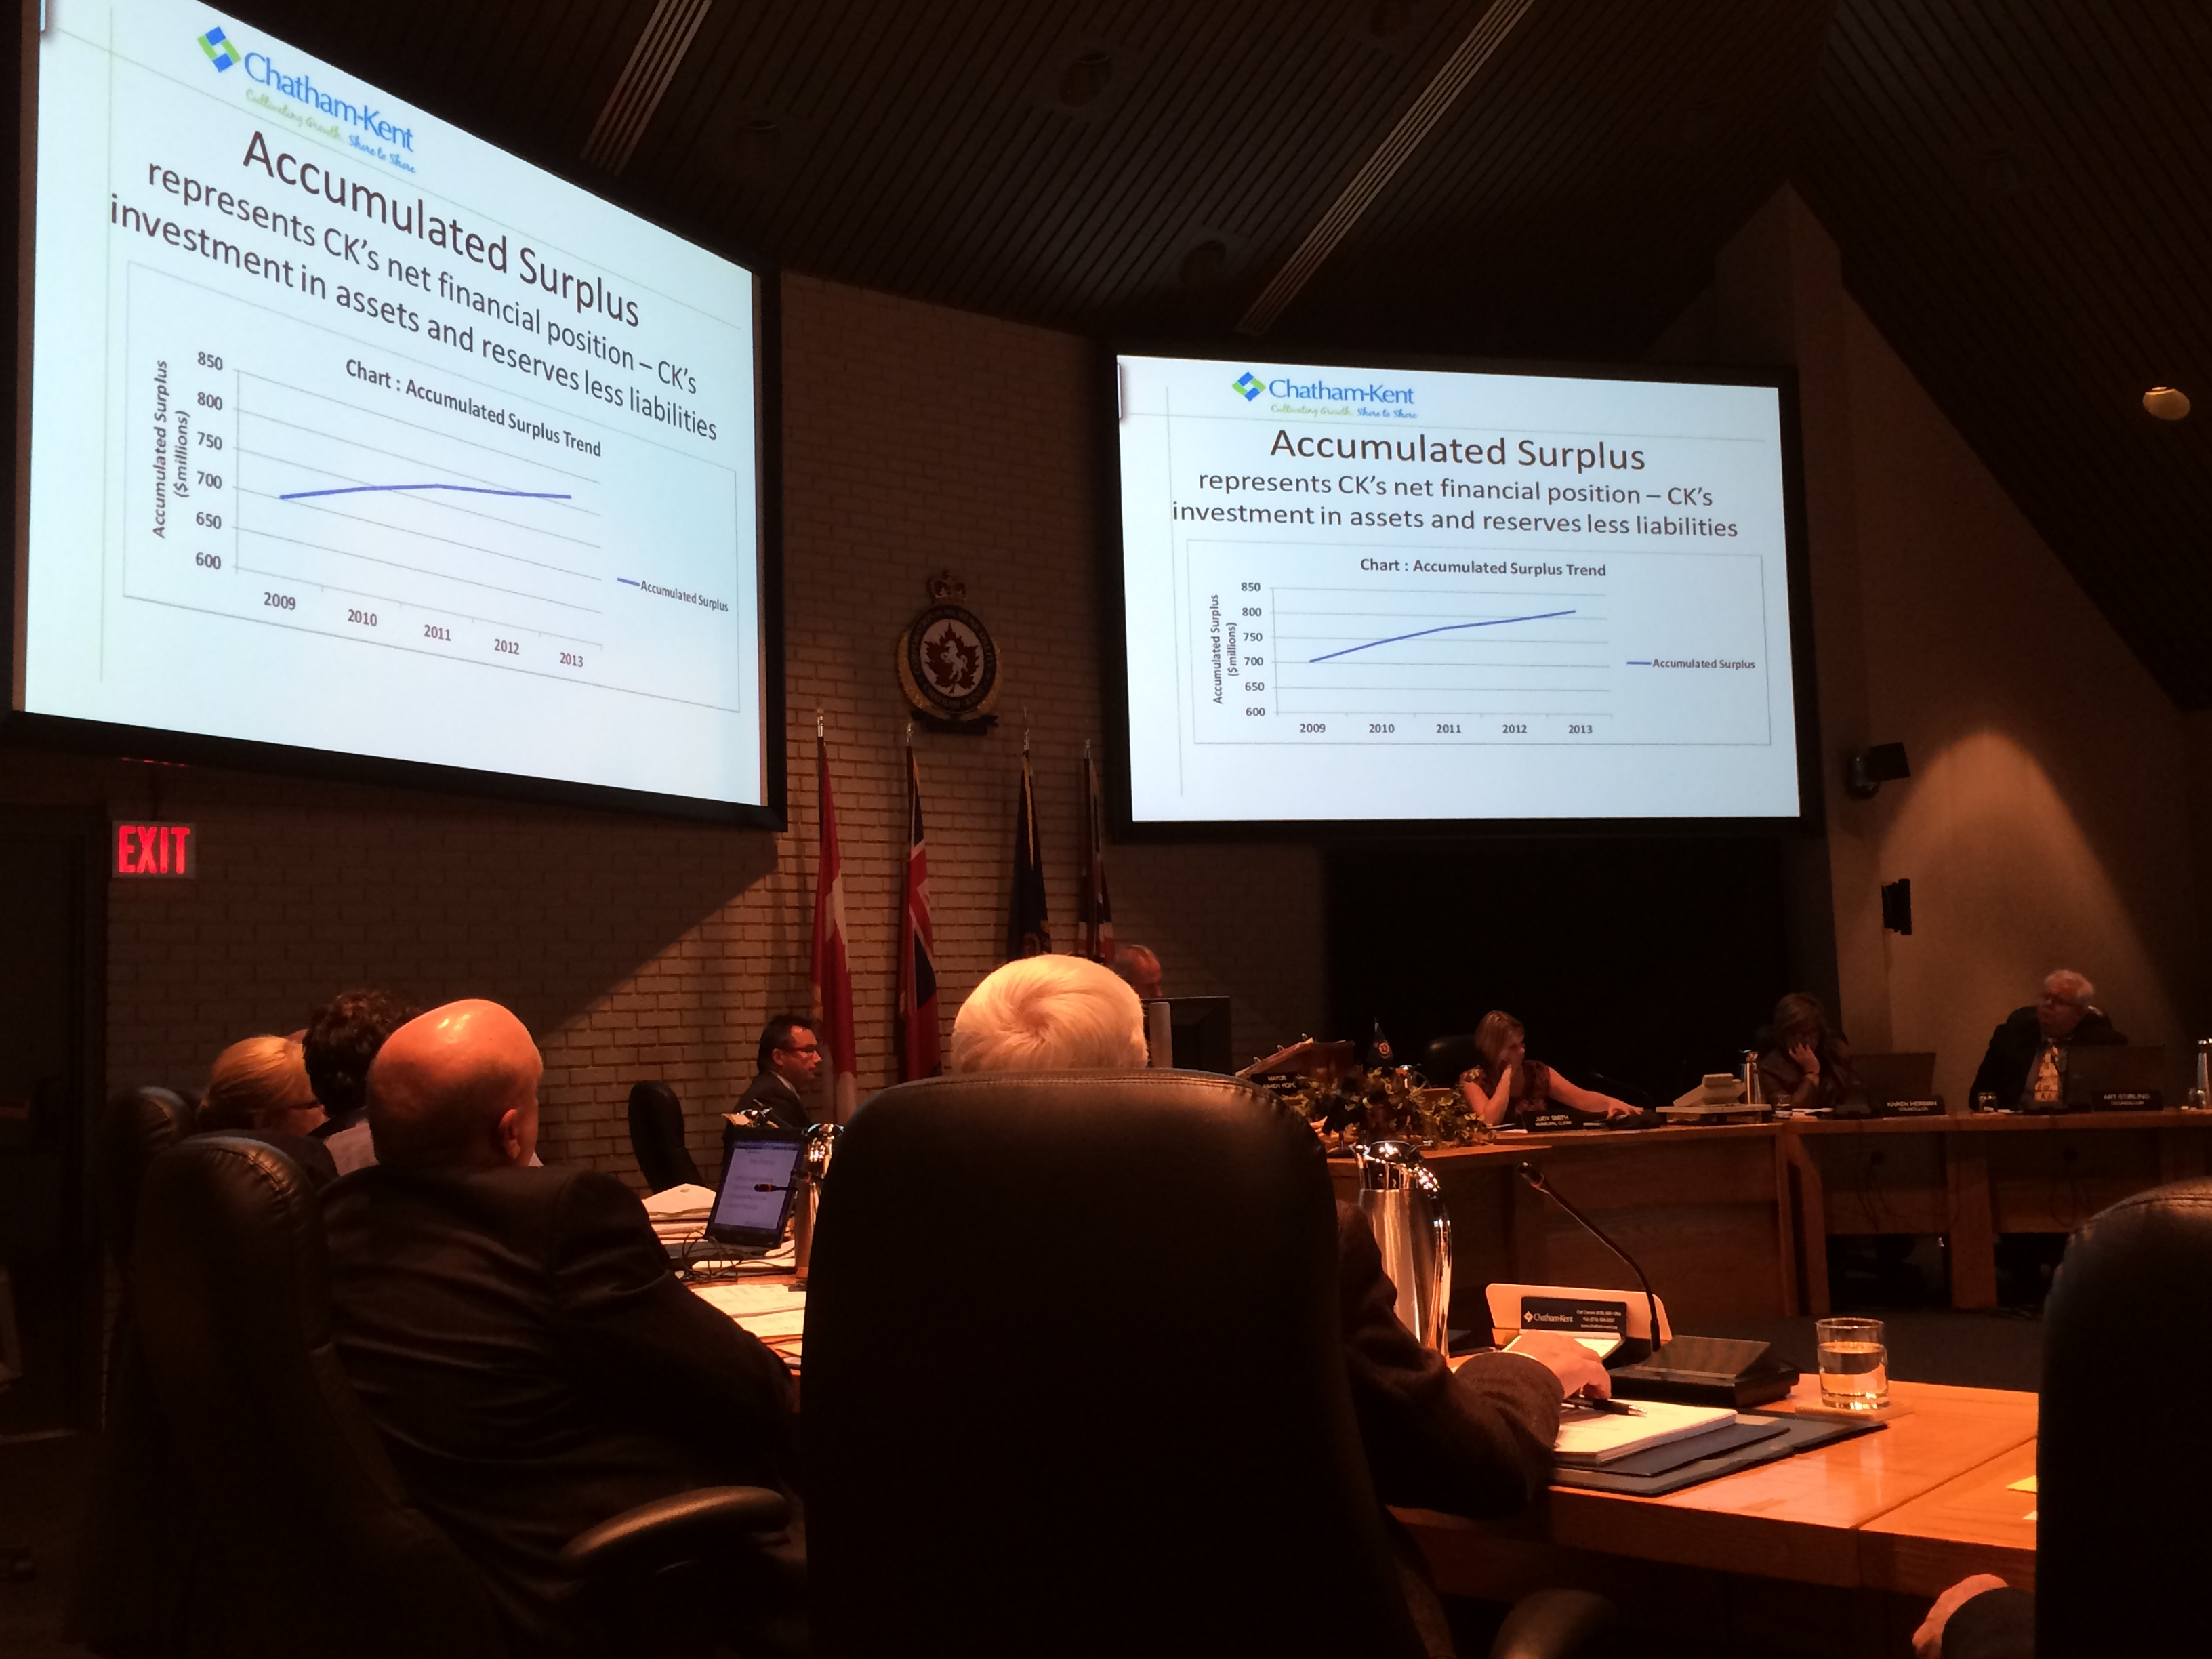 Chatham-Kent Council reviews the 2013 Audited Financial Statements report at its regular meeting on September 22, 2014. (Photo by Ricardo Veneza)